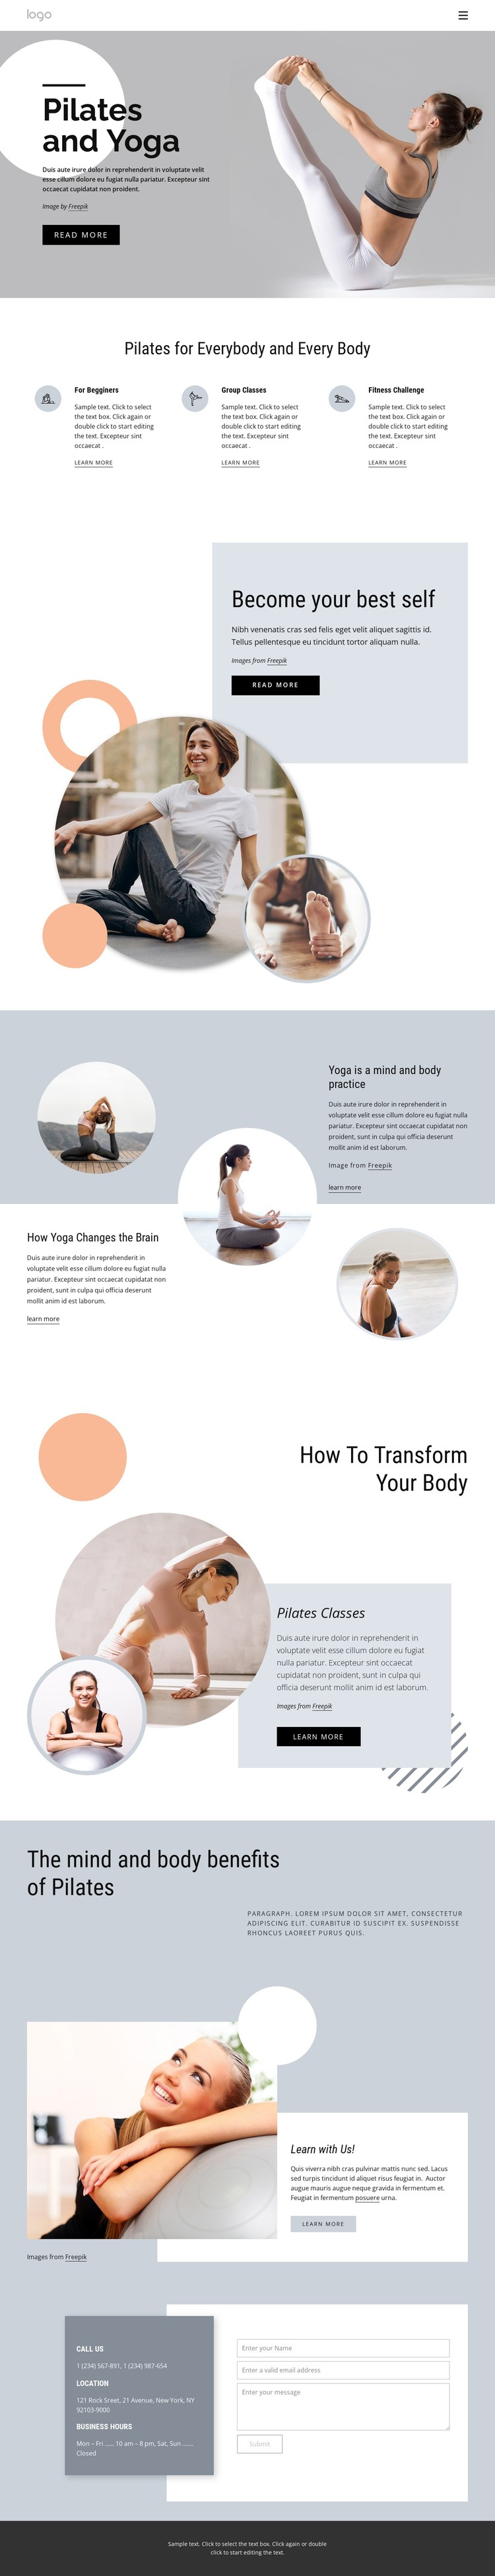 Pilates and yoga center WordPress Template